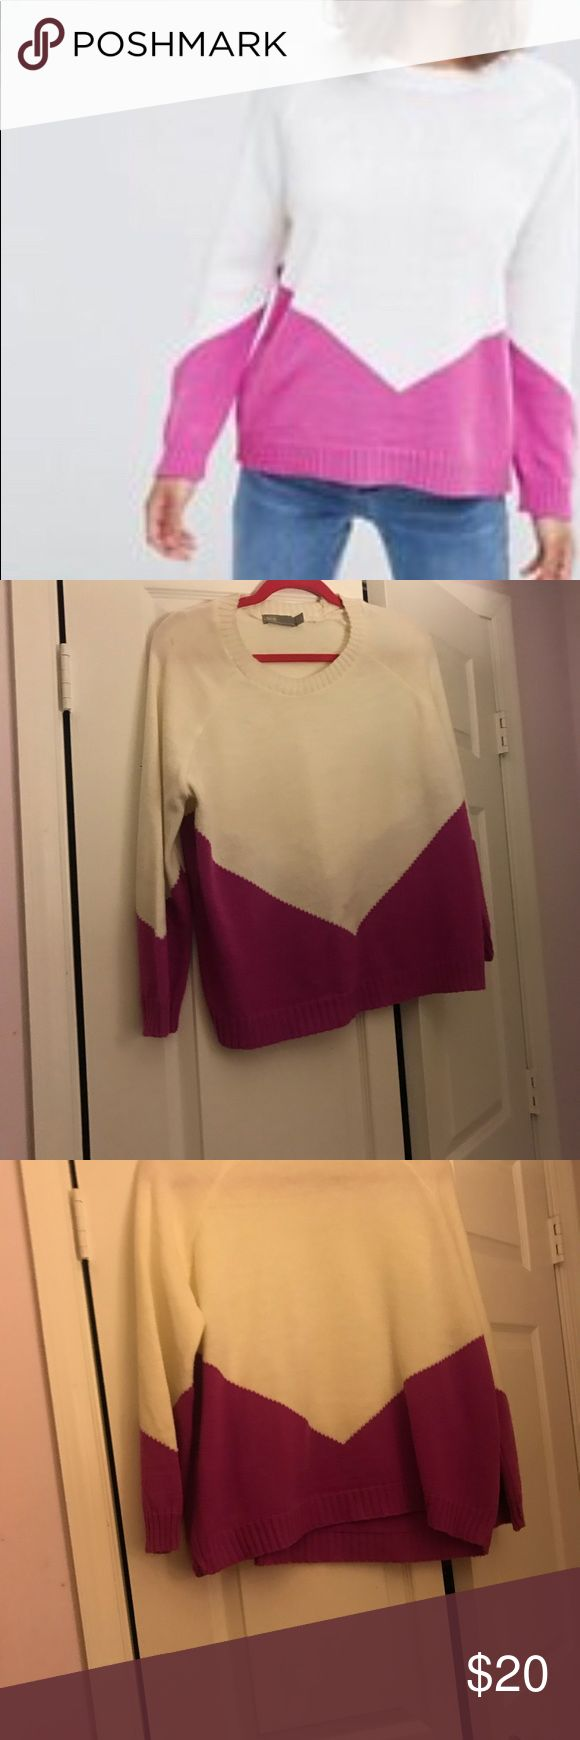 ASOS PETITE Chunky Sweater with Chevron Chevron design makes this extra playful.  This gently used chunky sweater is super warm and beautiful white with magenta coloring would brighten up any room. Great for Winter and its immediately after chilly Spring nights. ASOS Petite Sweaters